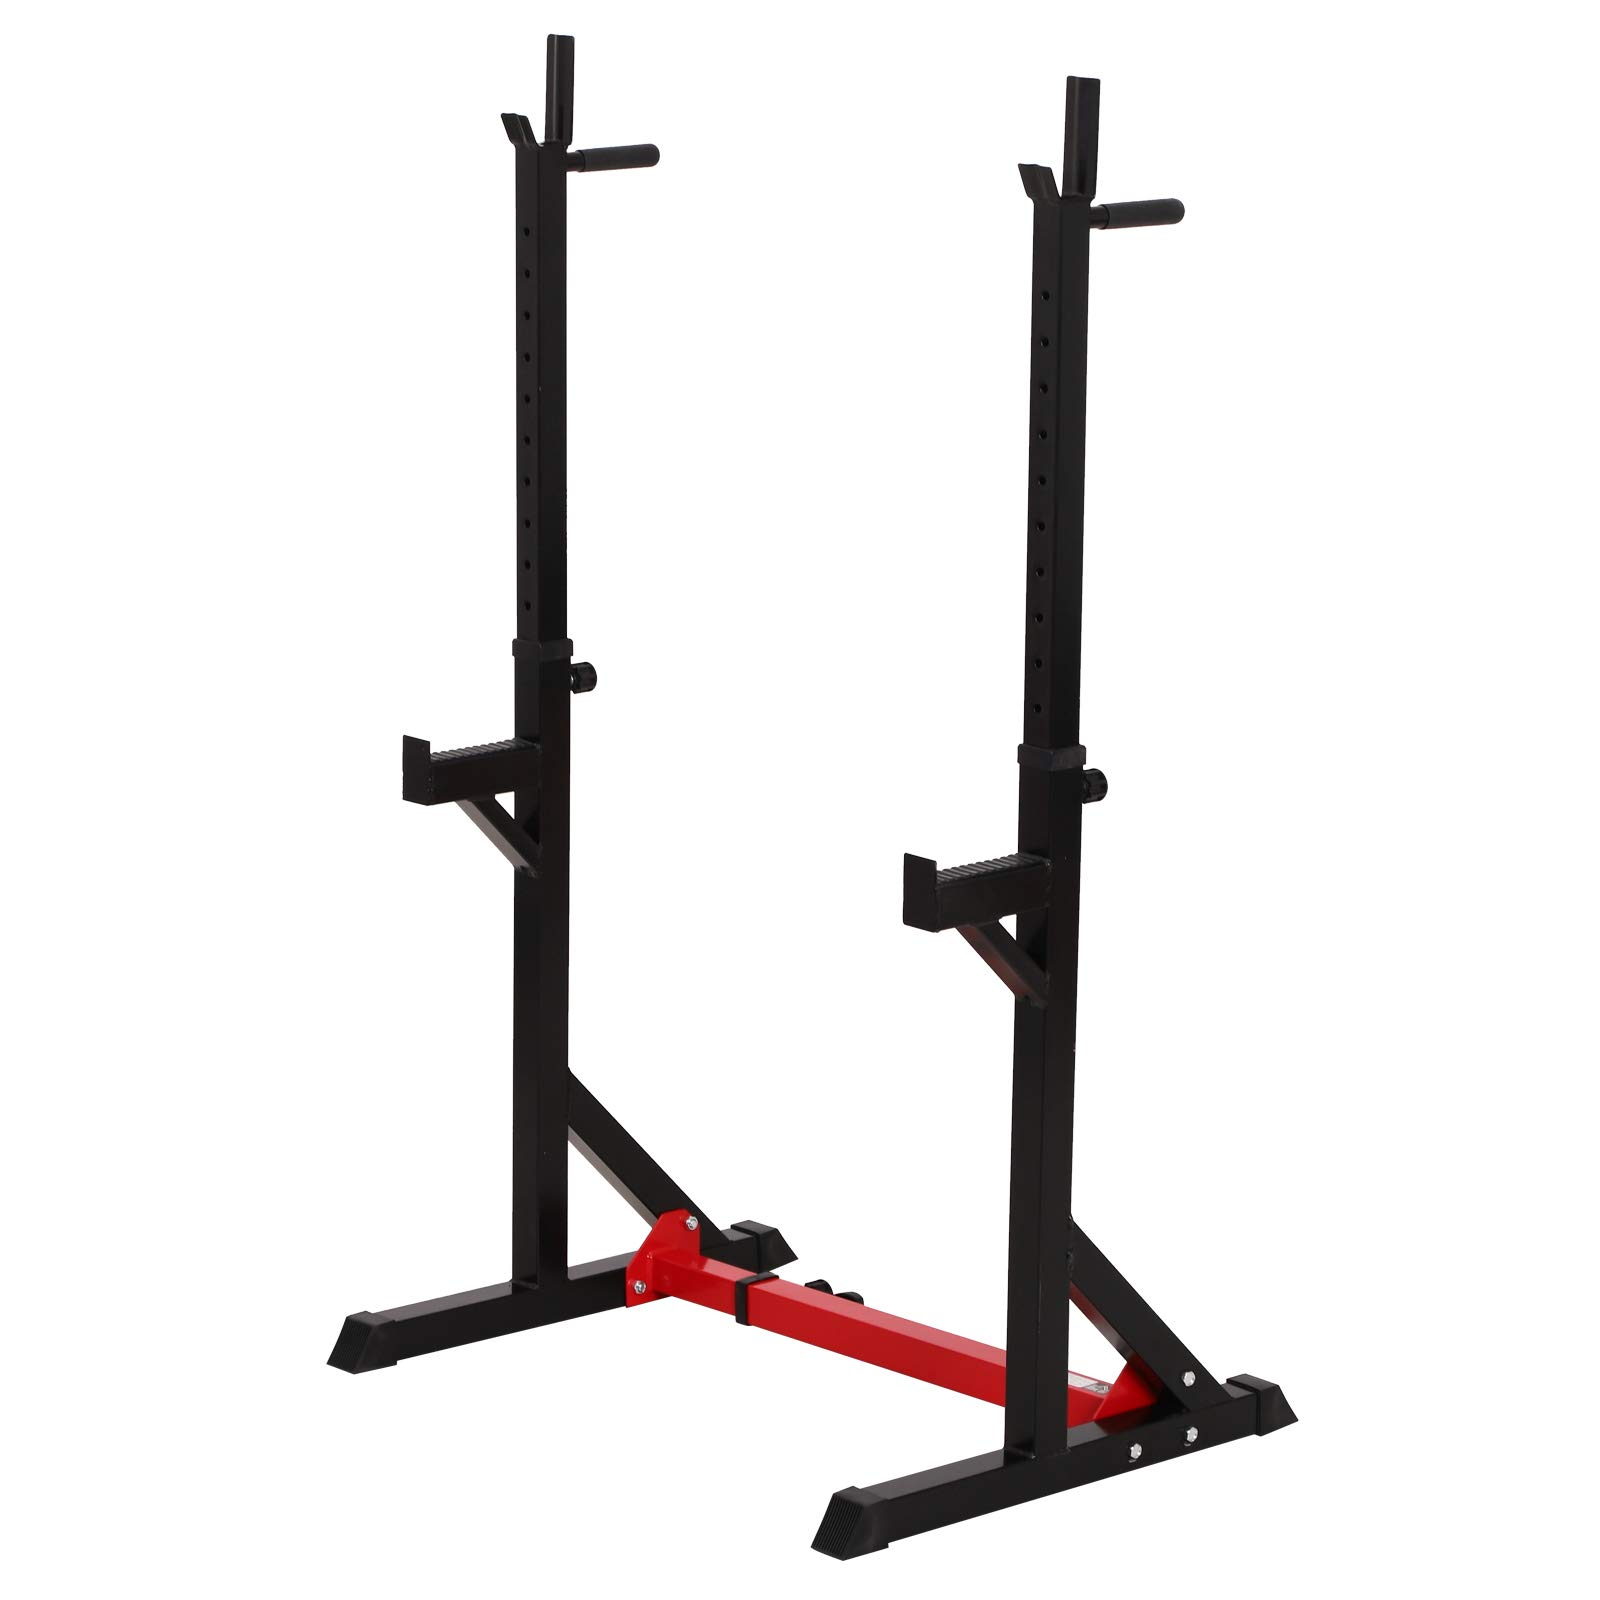 Soozier 2-Piece Pair Steel Height and Base Adjustable Barbell Squat Rack and Bench Press by Soozier